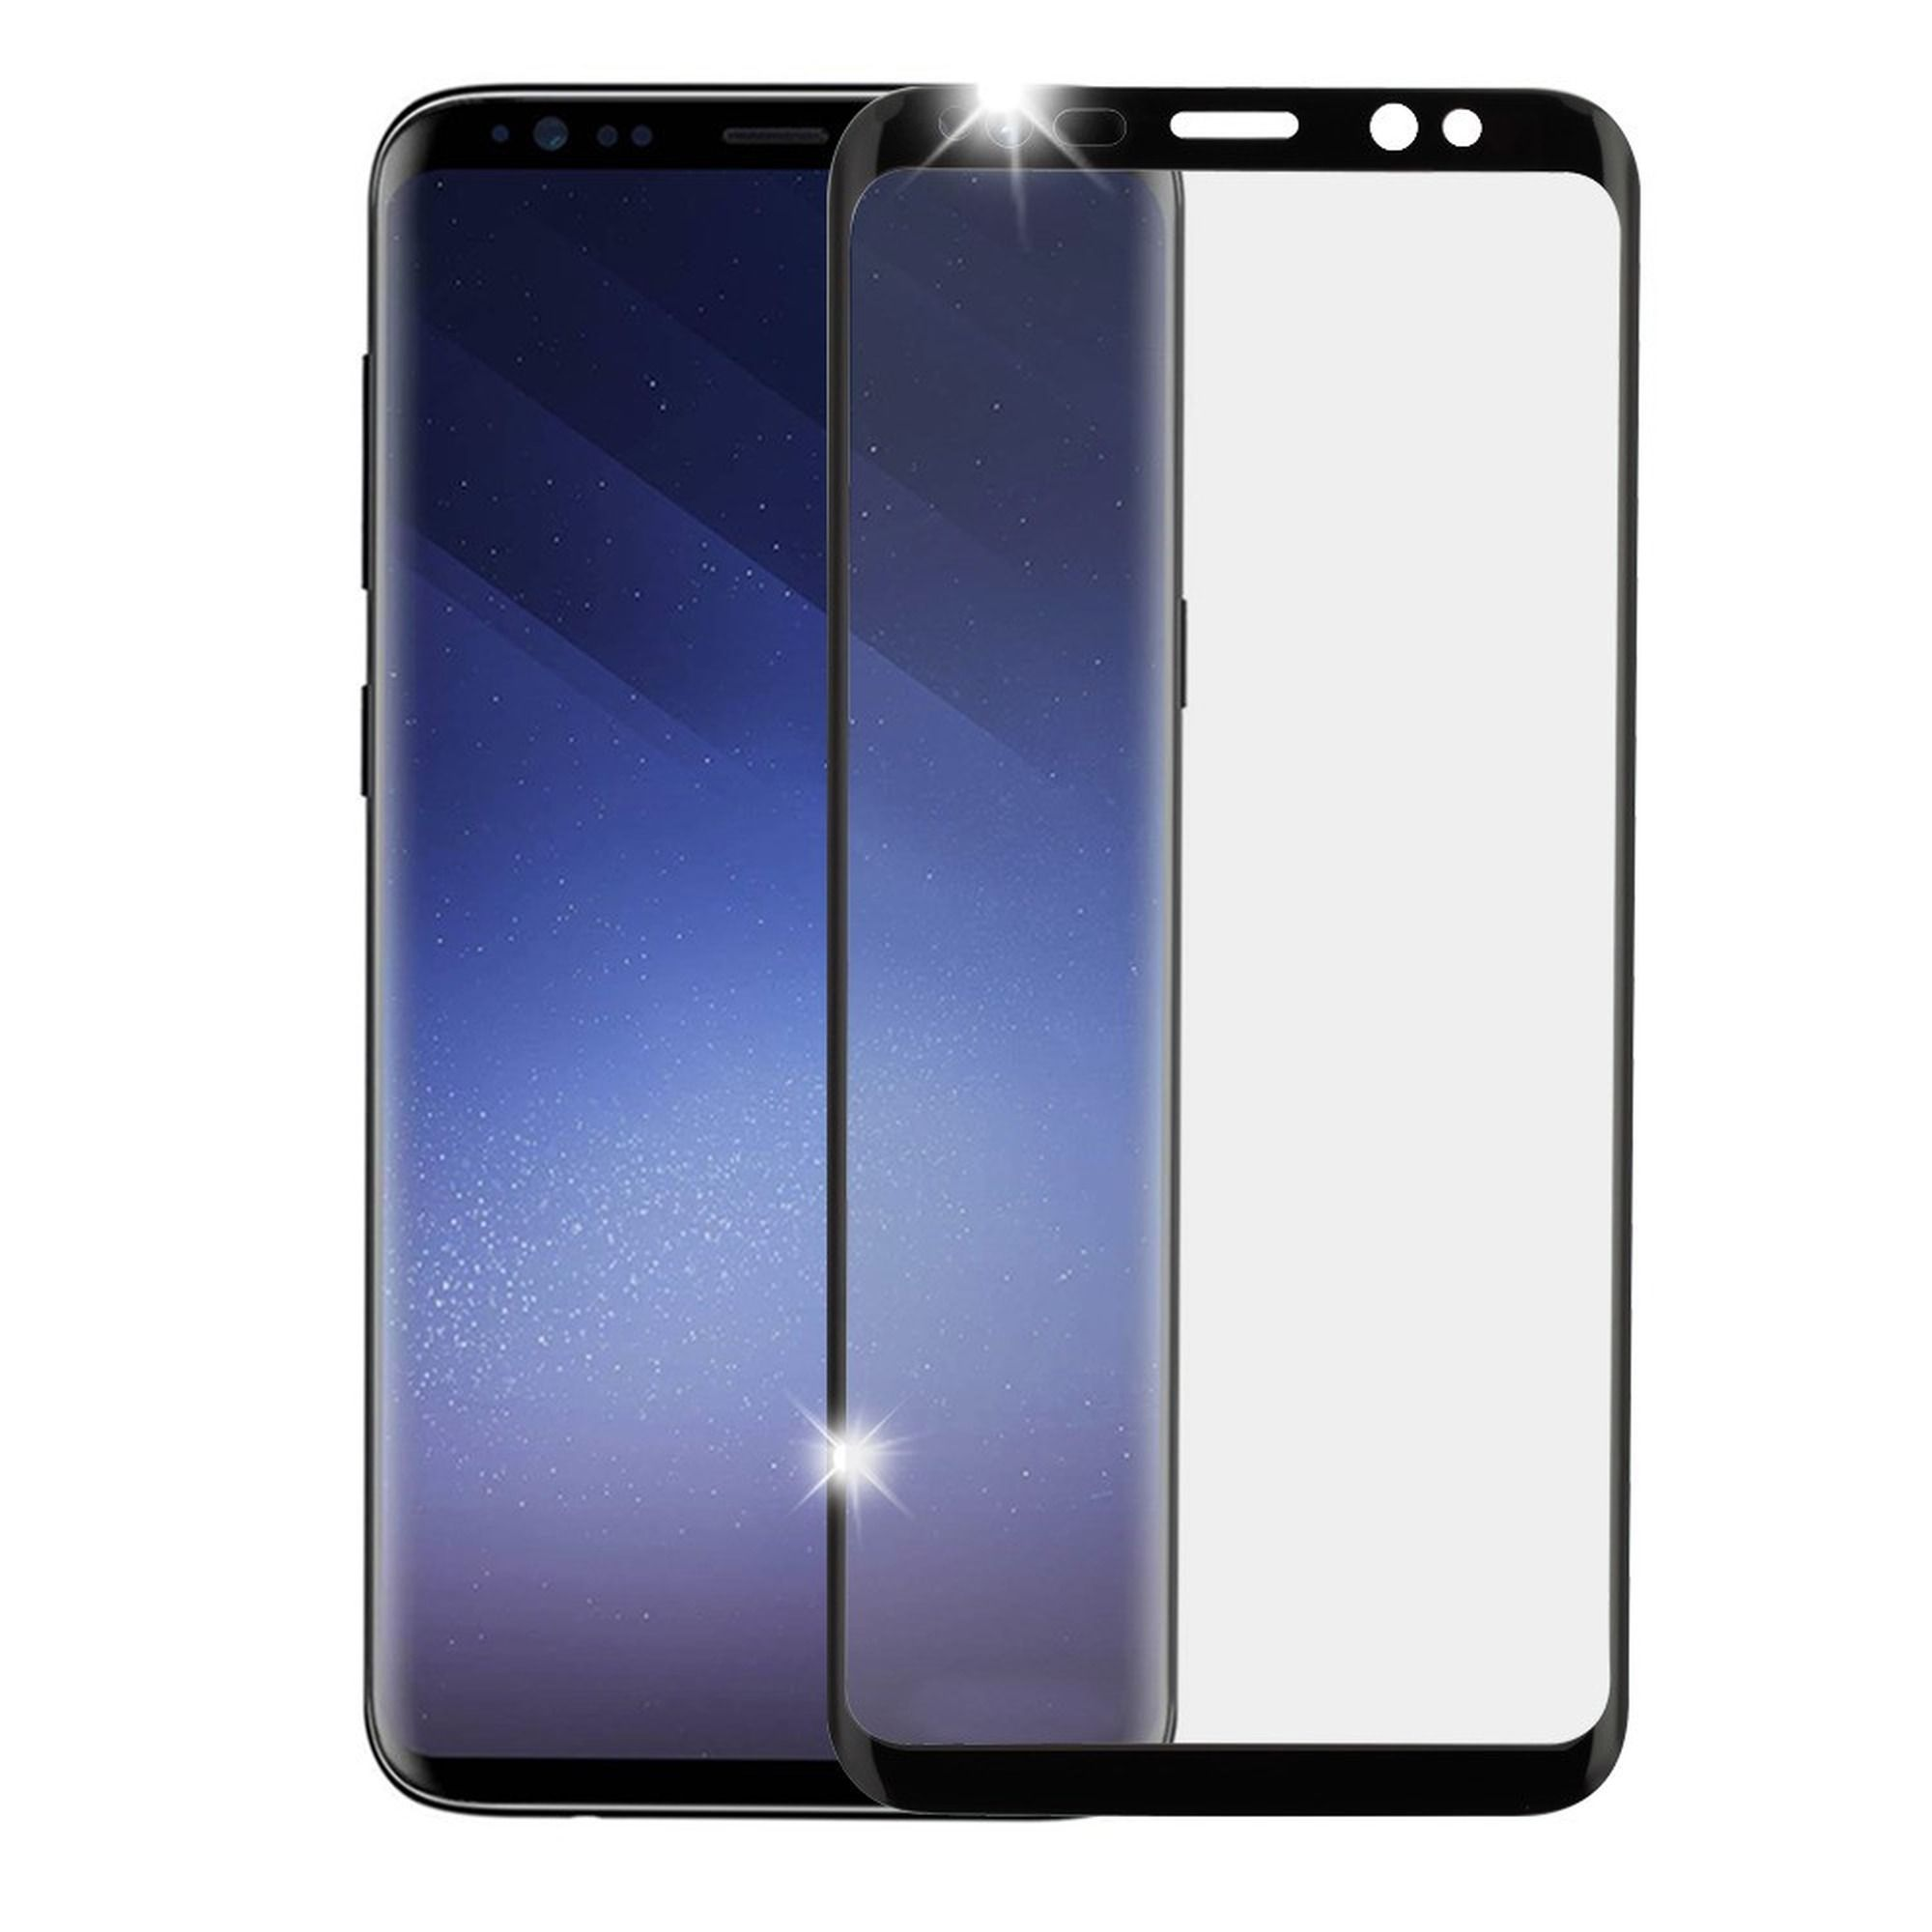 Insten Full Coverage Tempered Glass Screen Protector Film Cover For Samsung Galaxy S9 Plus - Black